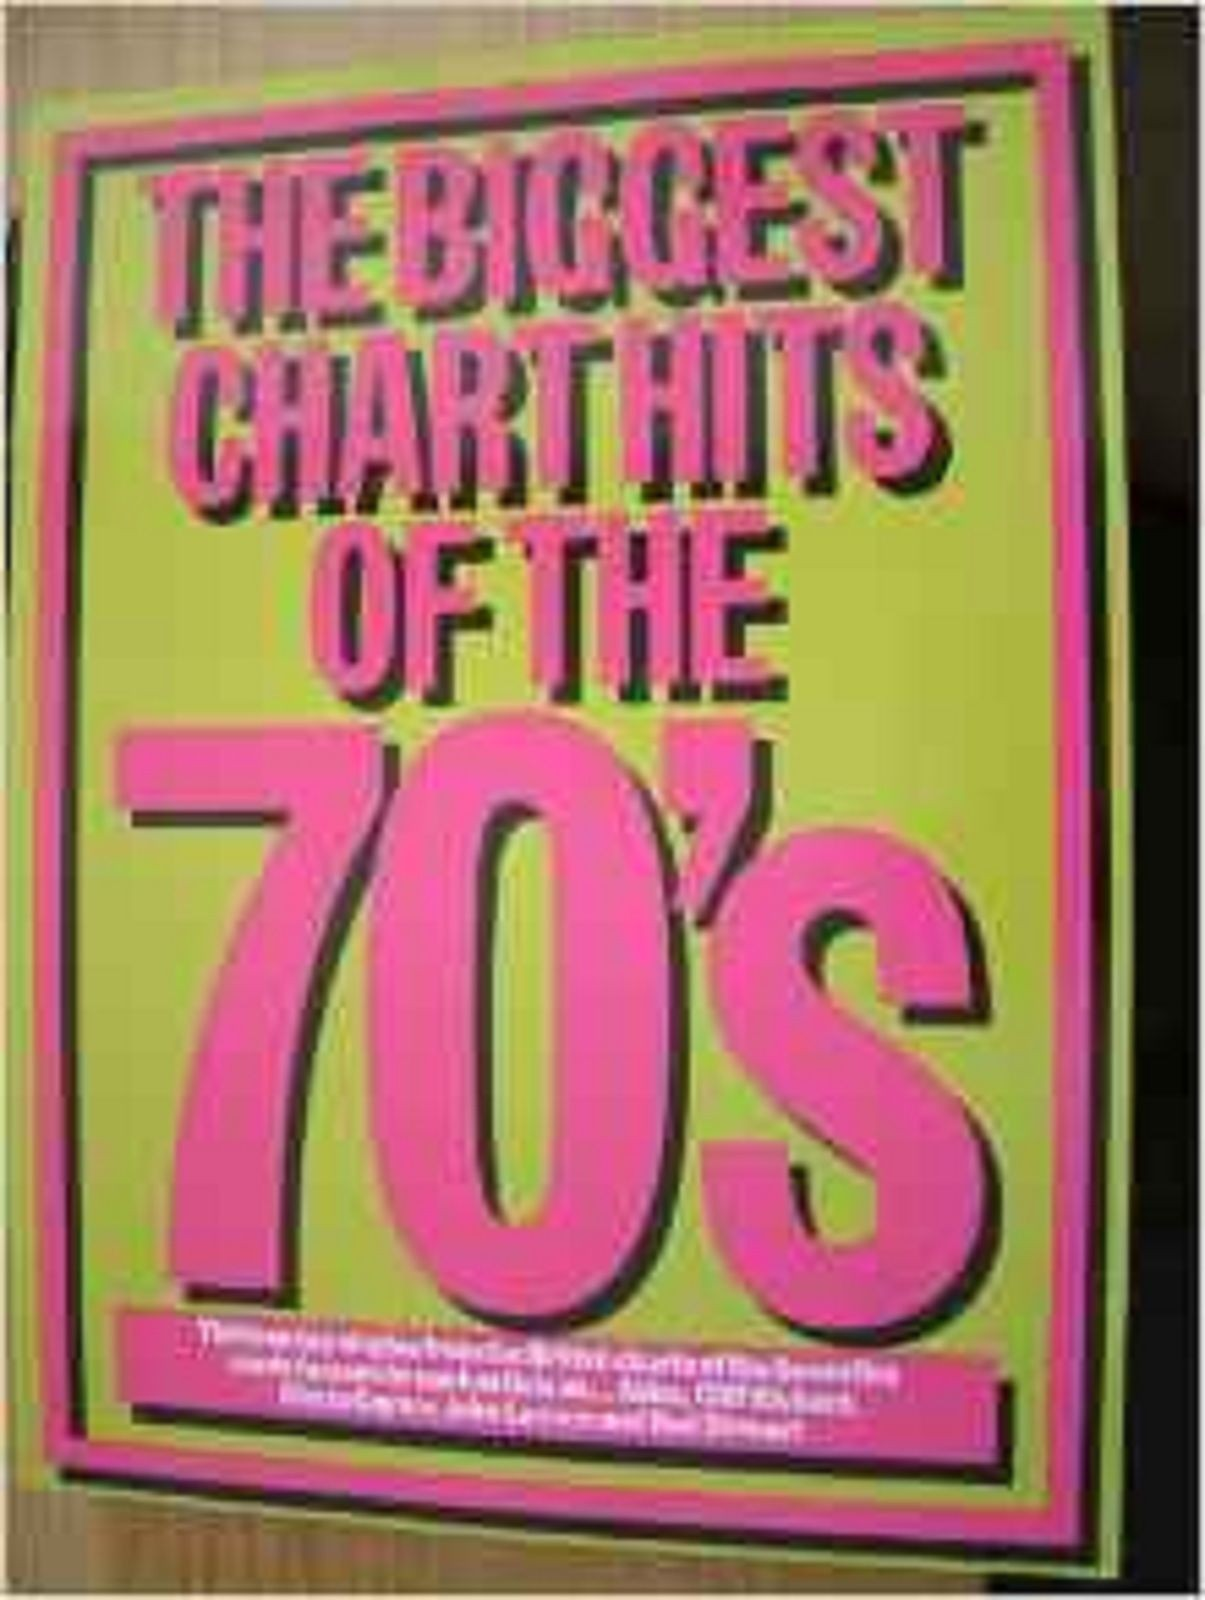 The Biggest Chart Hits Of The 70's Songbook Sheet Music Piano Vocal Book S101